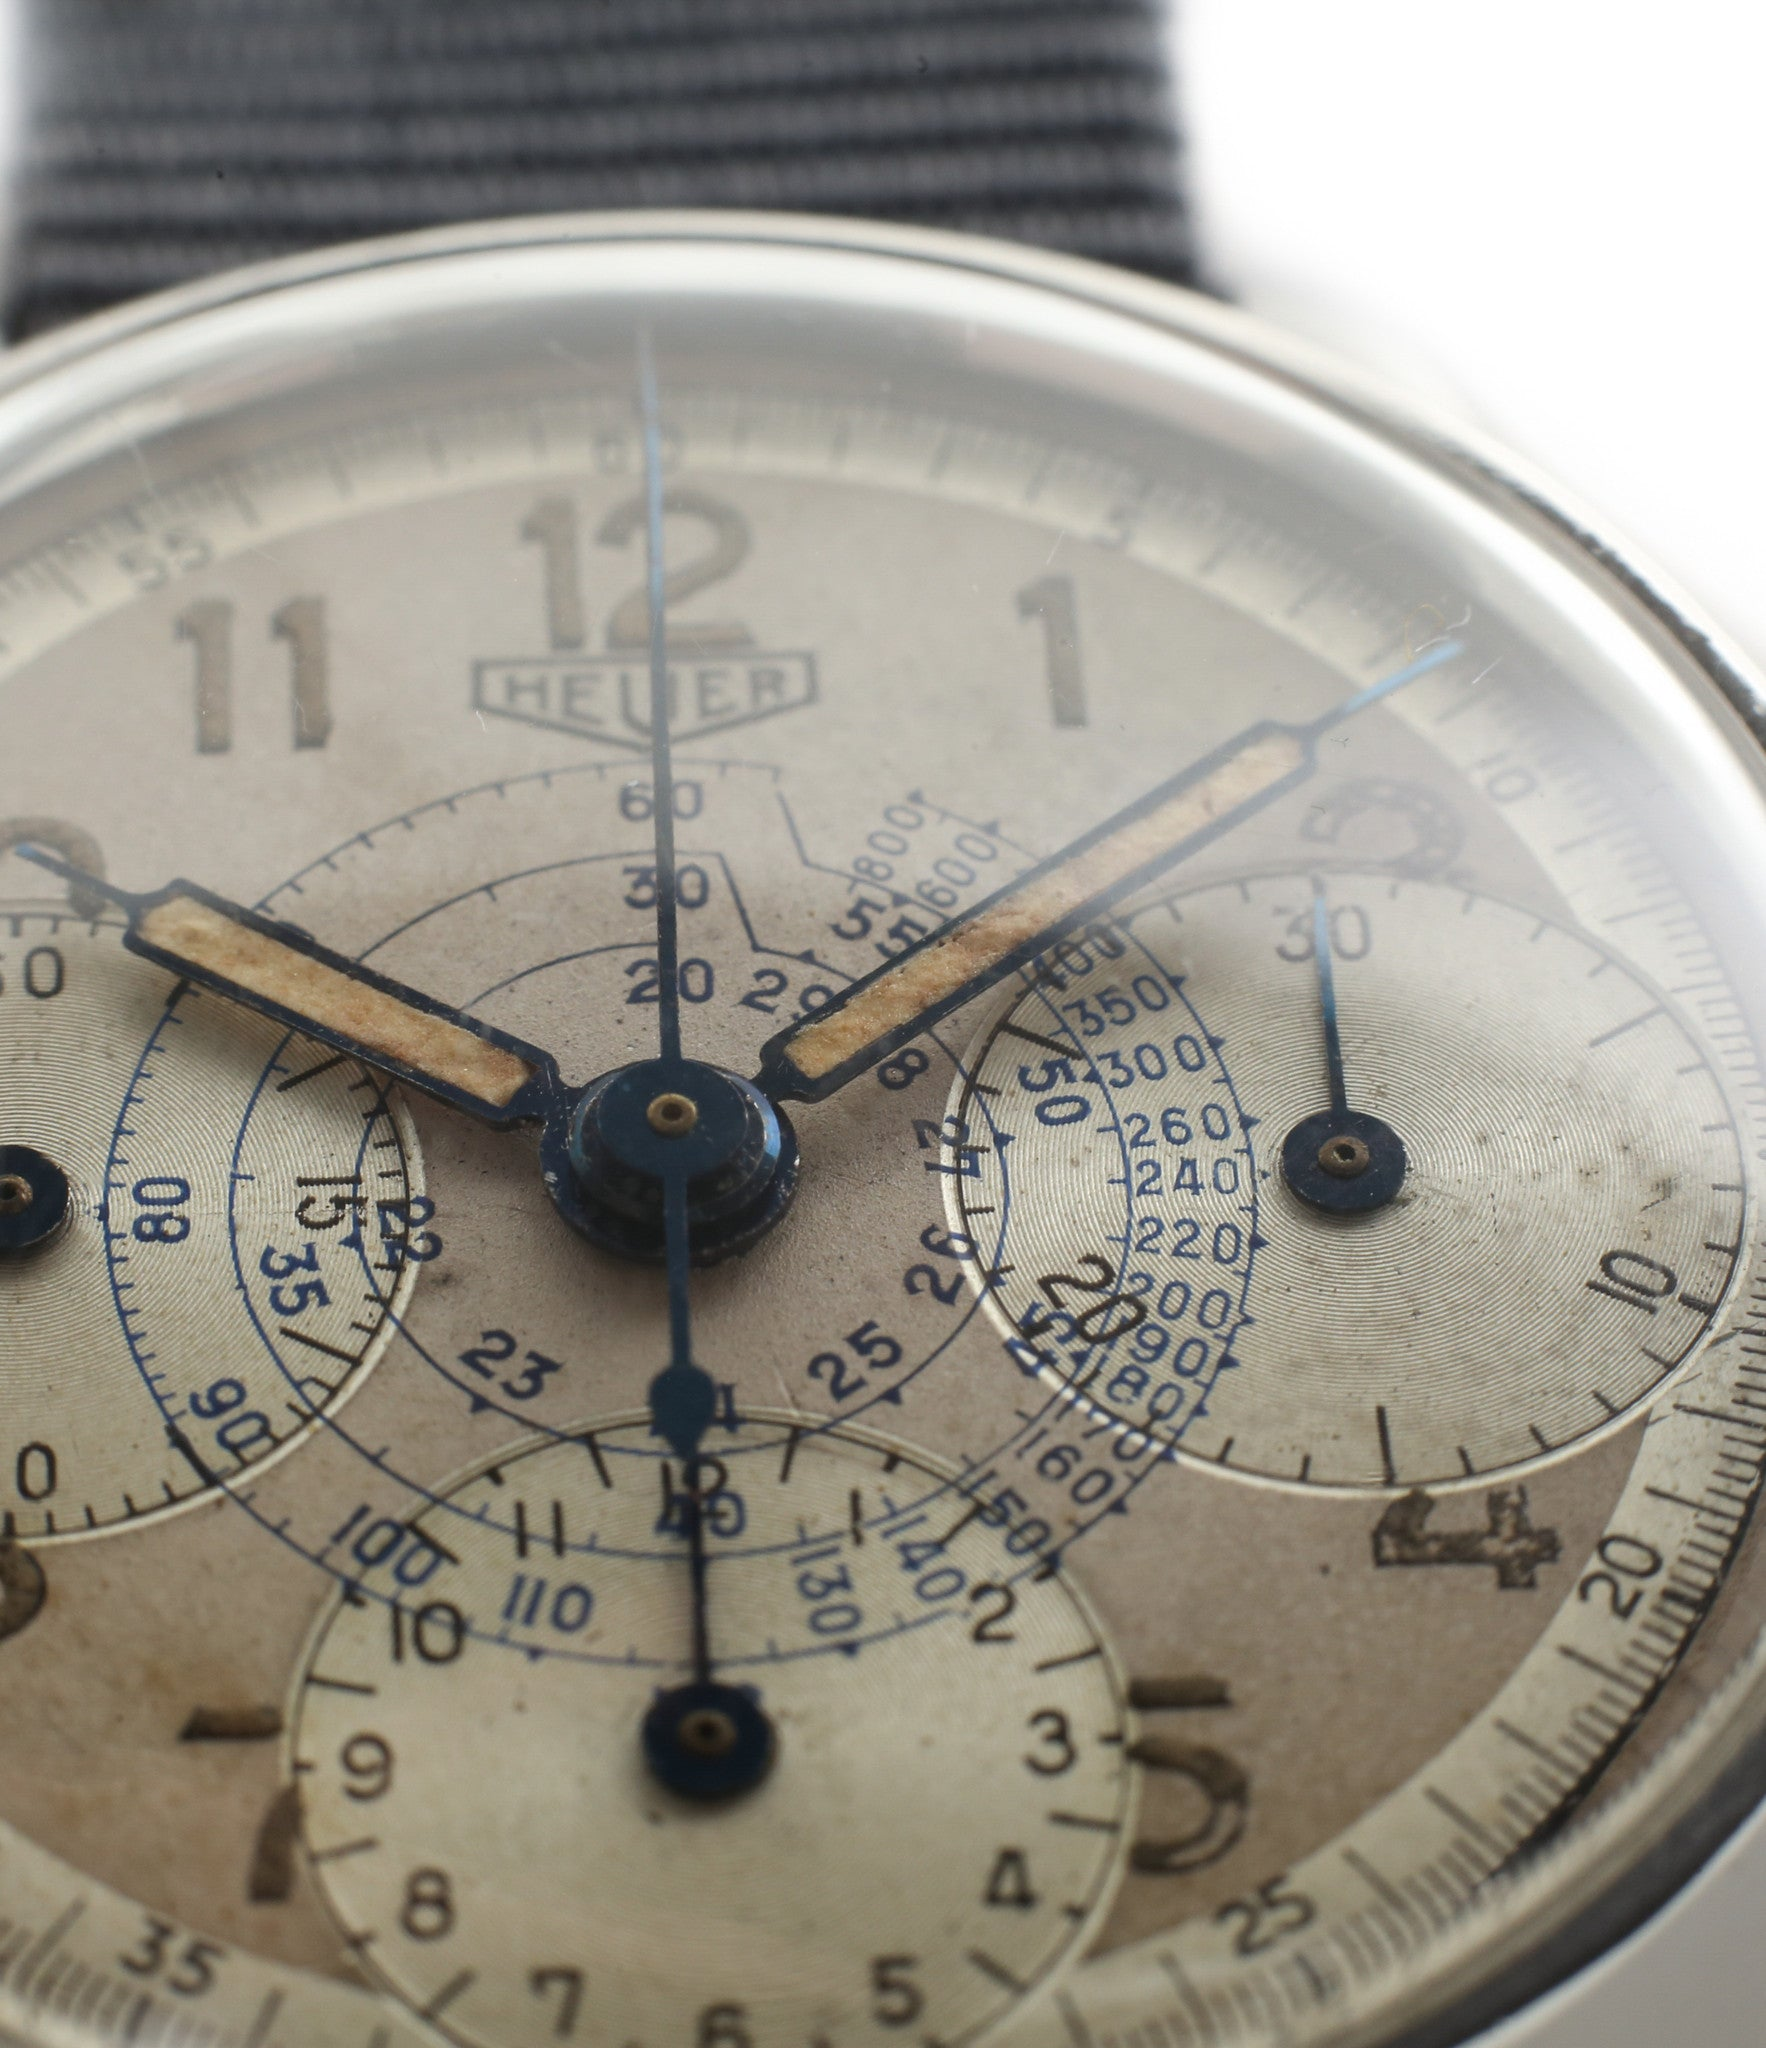 tachymeter vintage Heuer Chronograph steel watch online at A Collected Man London